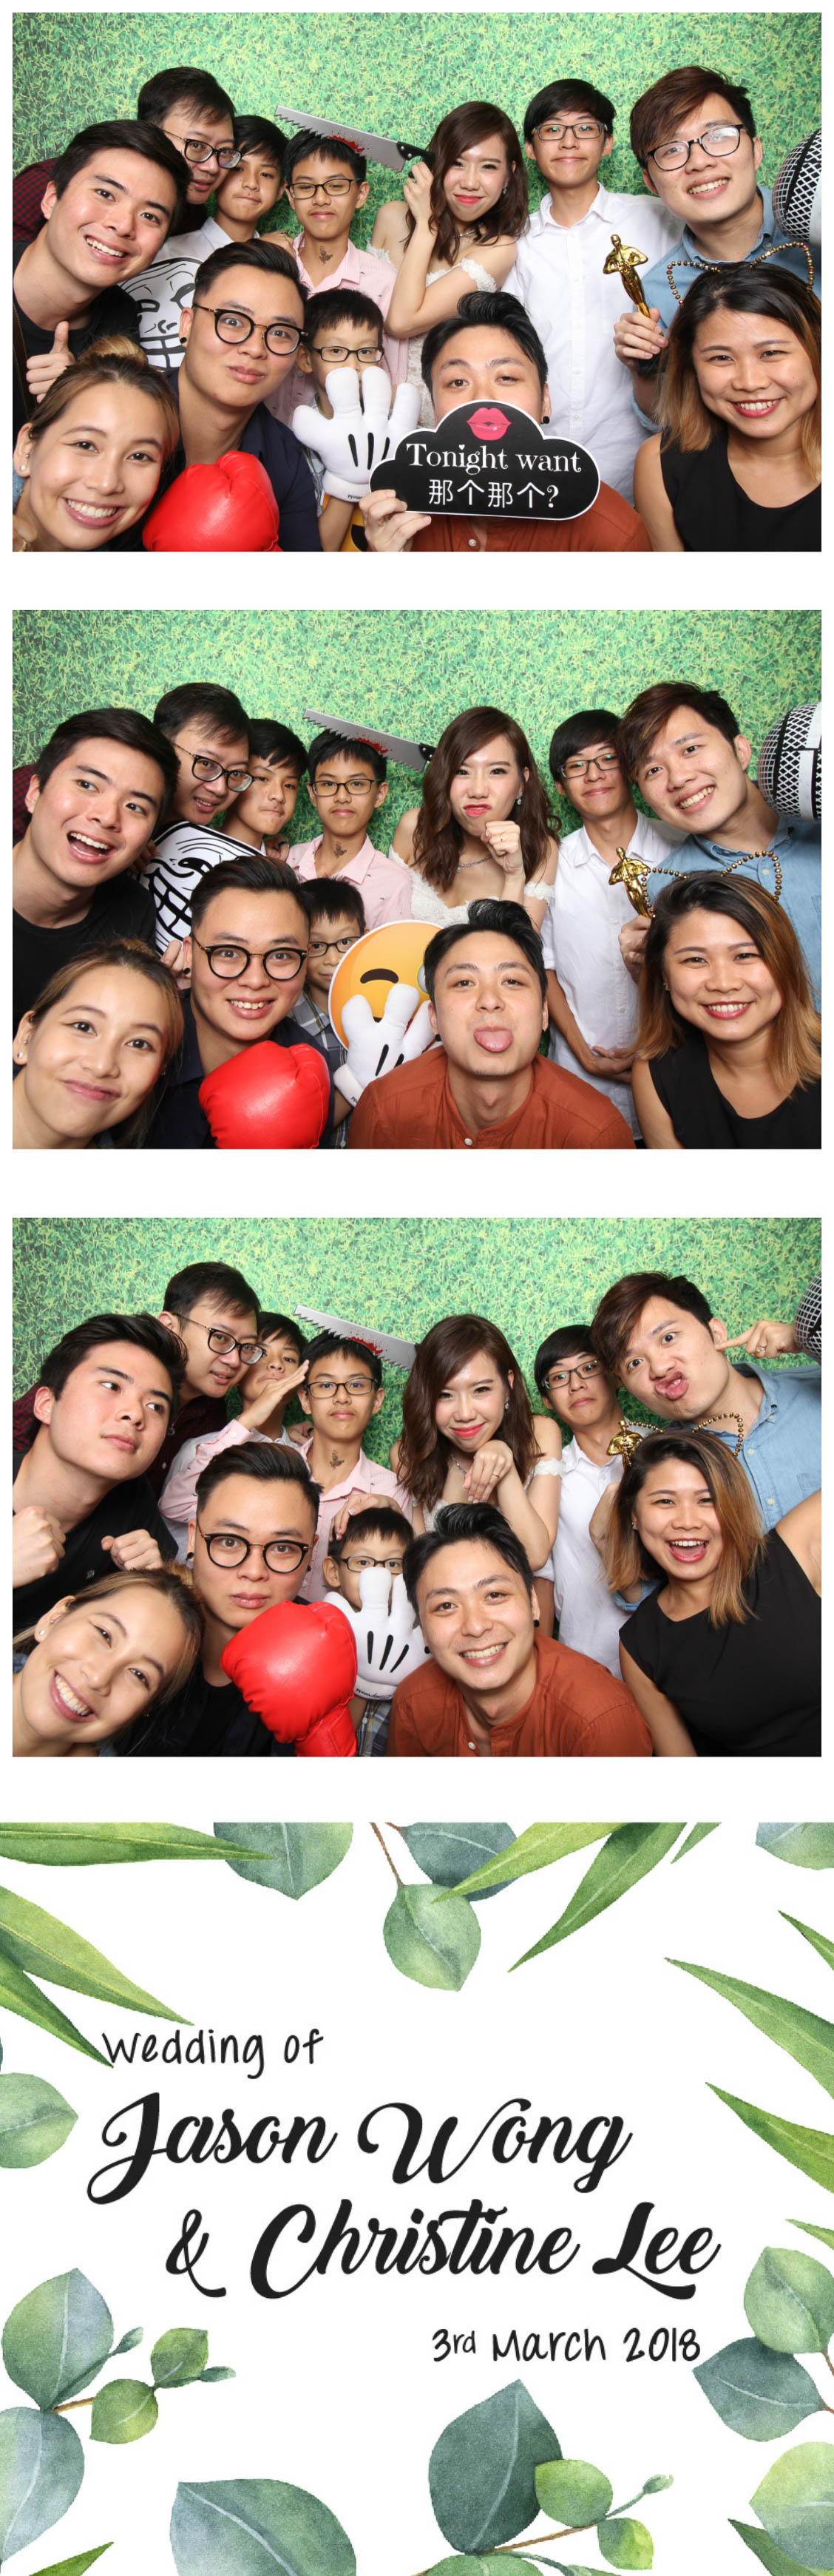 Photobooth 0302-29